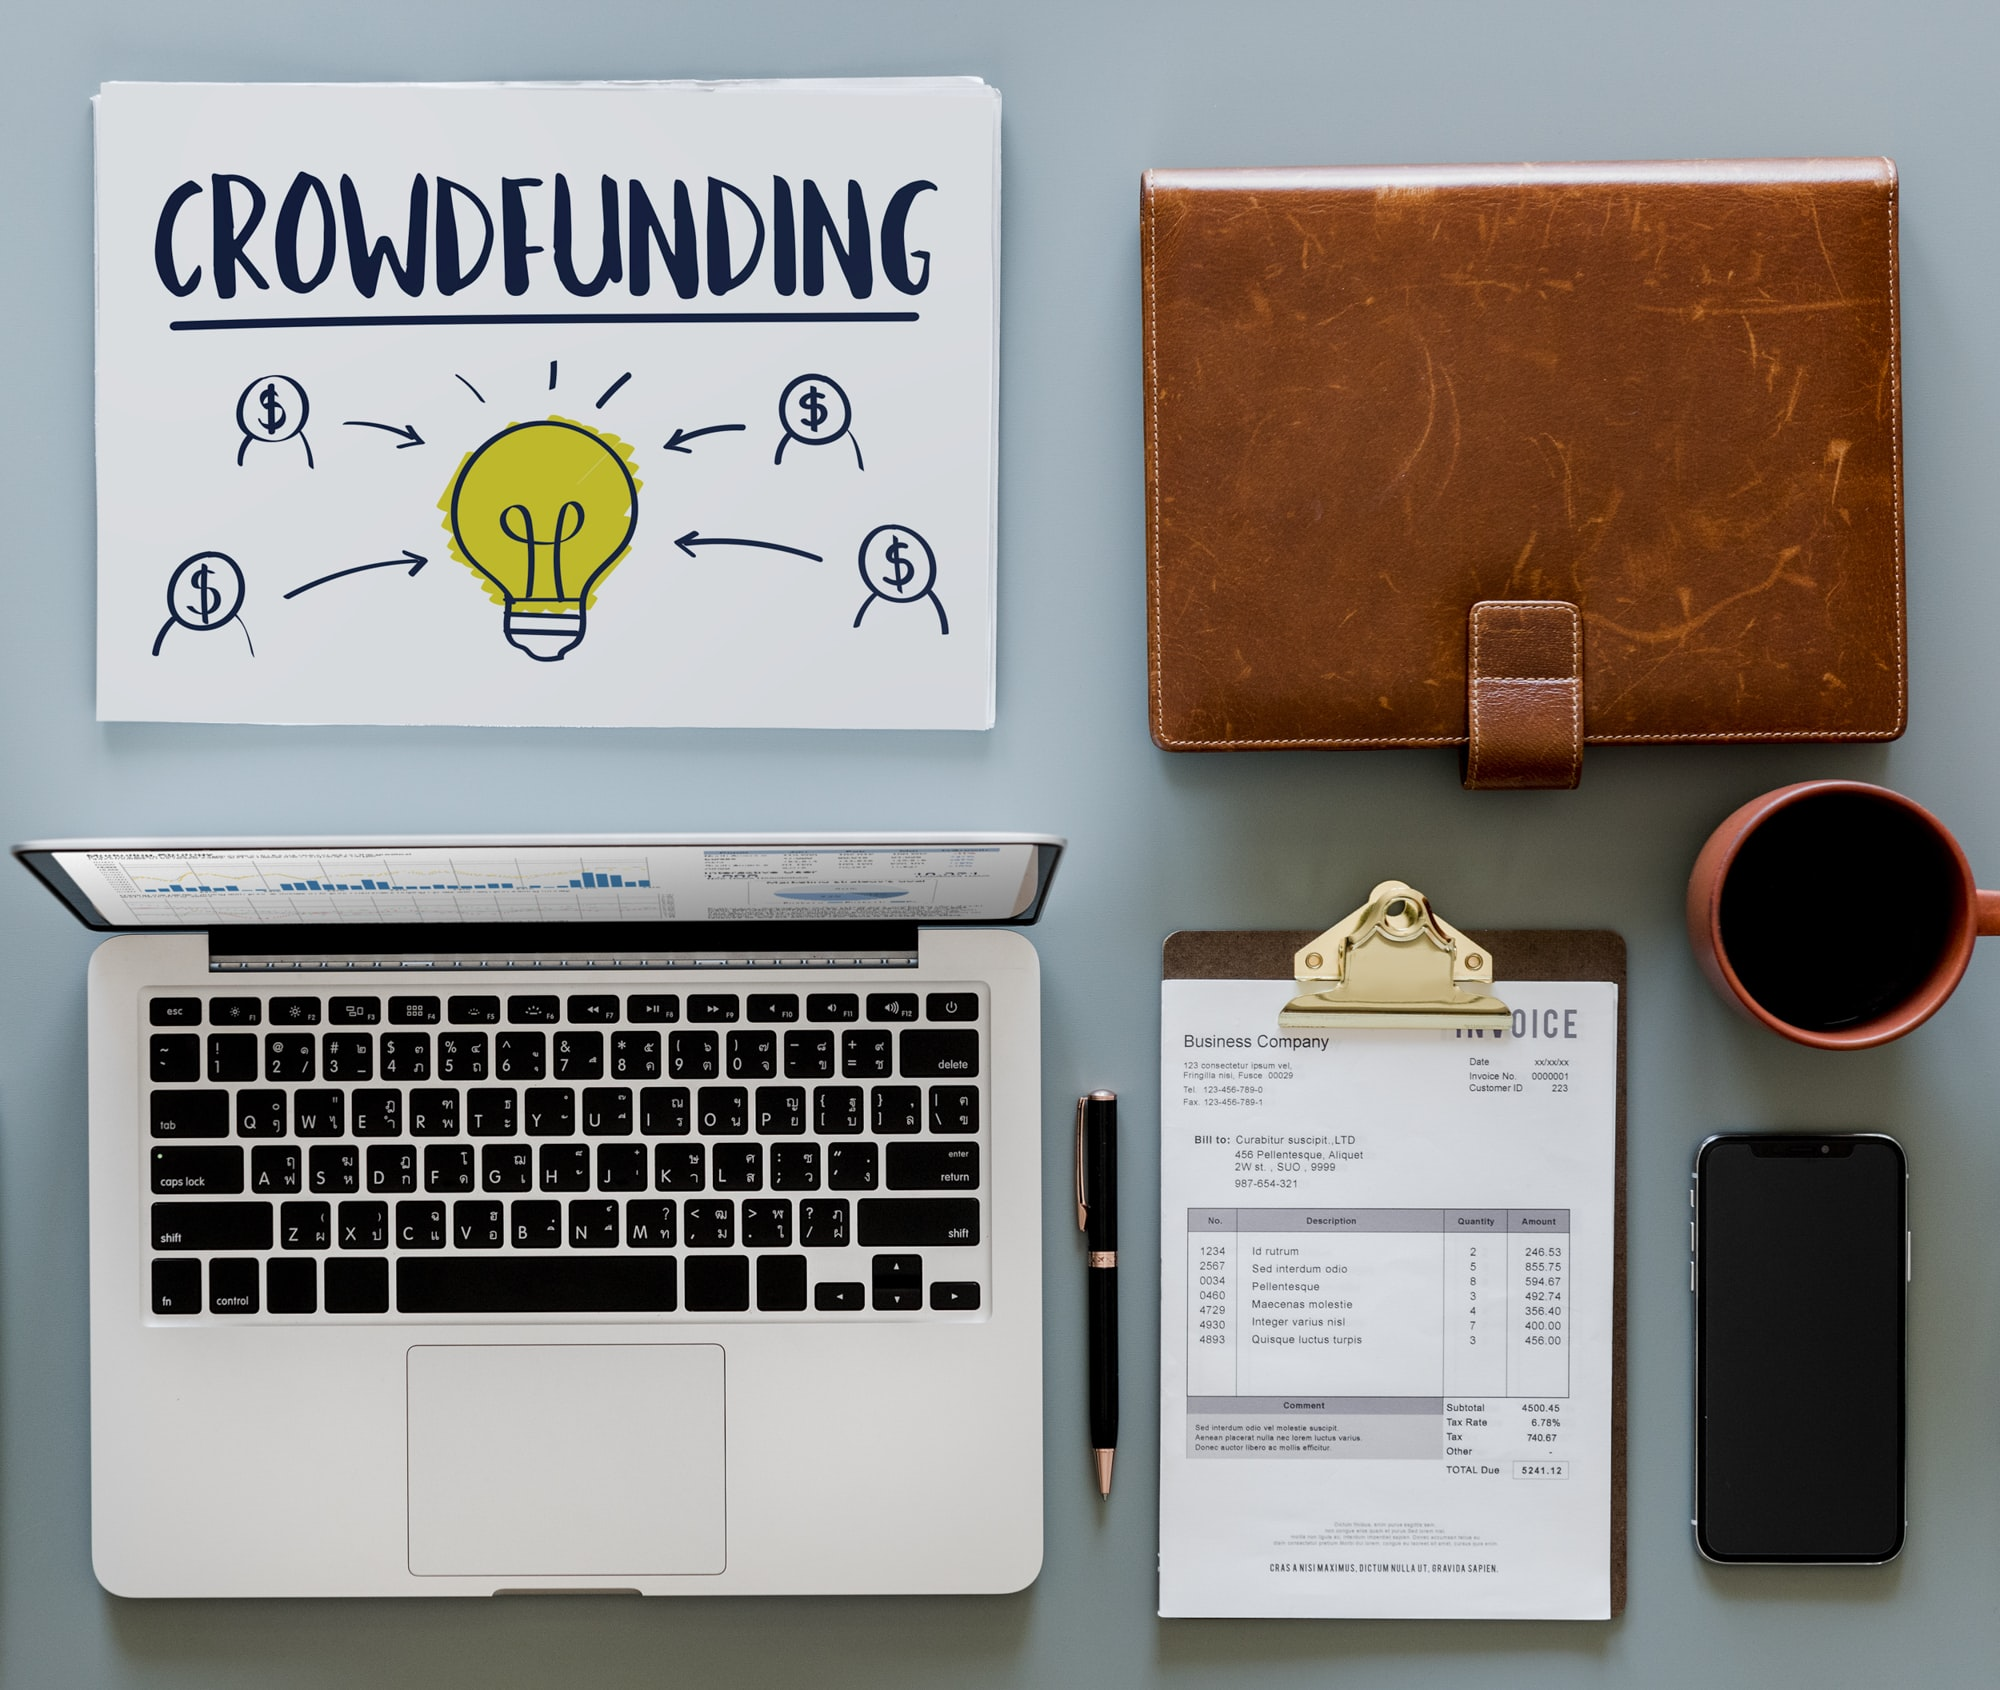 Crowdfunding real estate: what you need to know before you invest